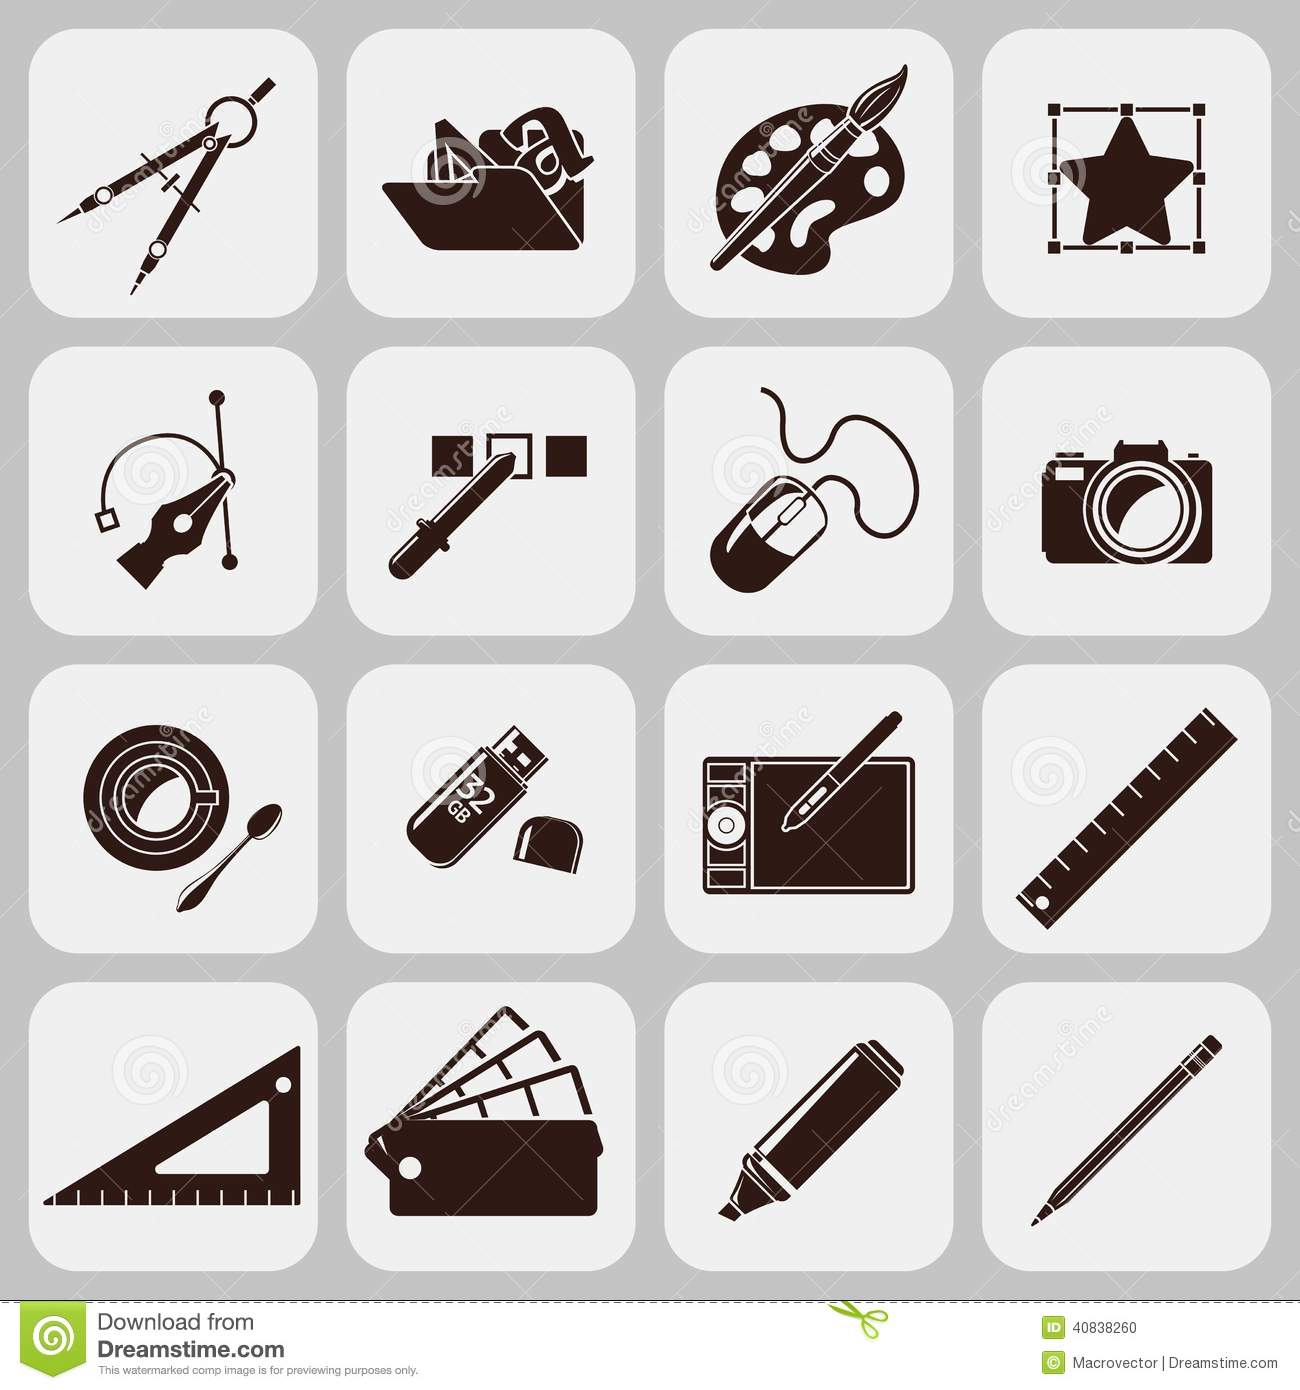 Graphic of tools clipart clip free download Designer Tools Black Icons Stock Vector - Image: 40838260 clip free download